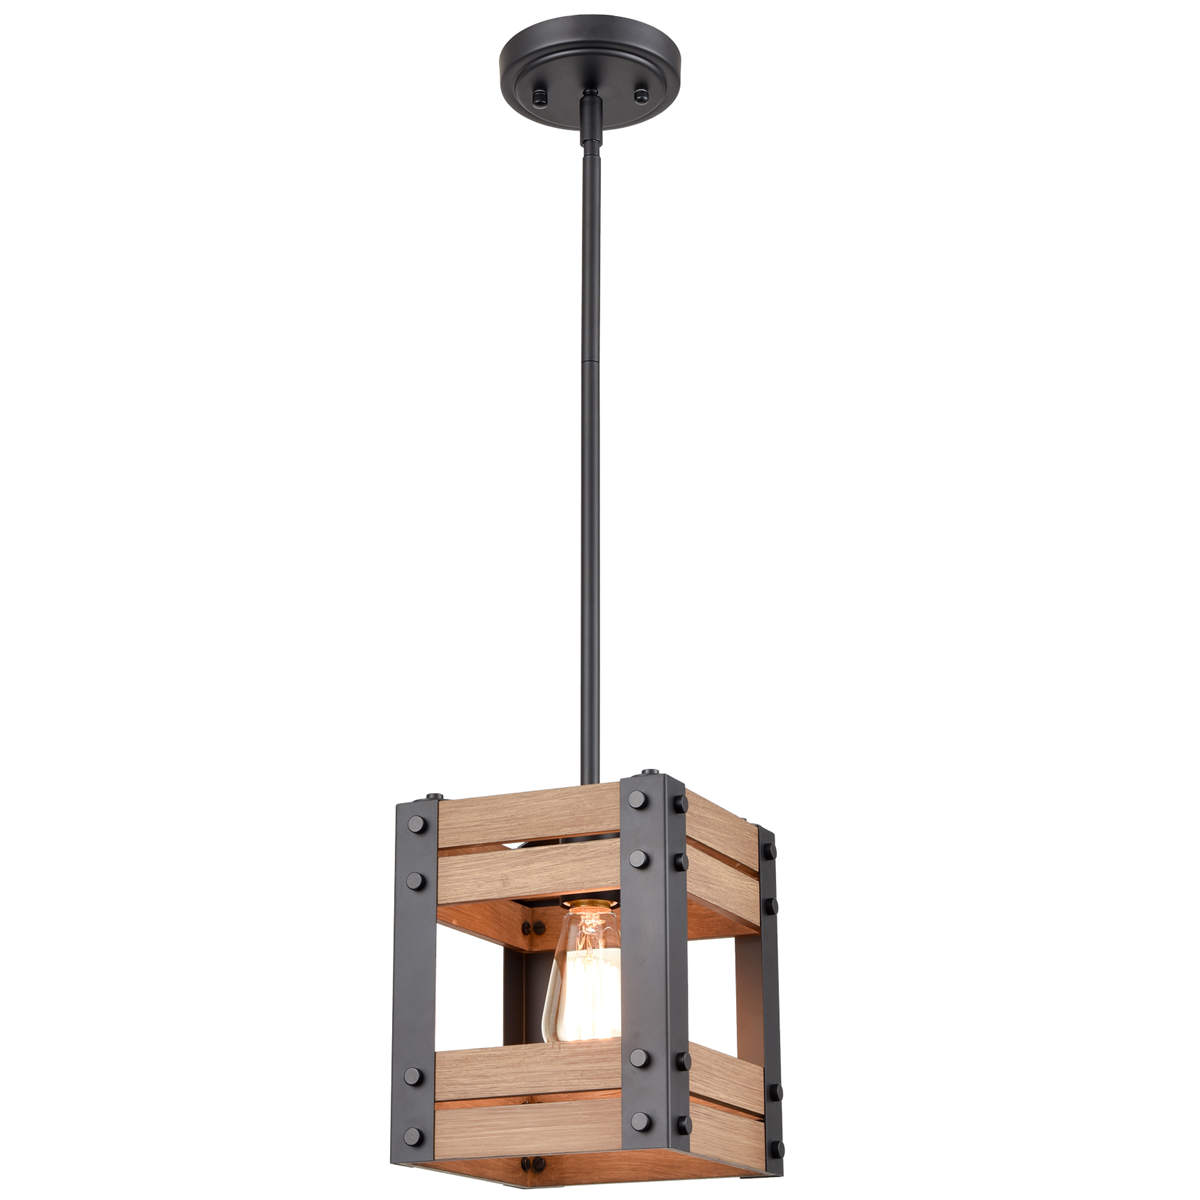 Rustic Rod-Hung Cage Wood kitchen Pendant Lighting, Black (4)